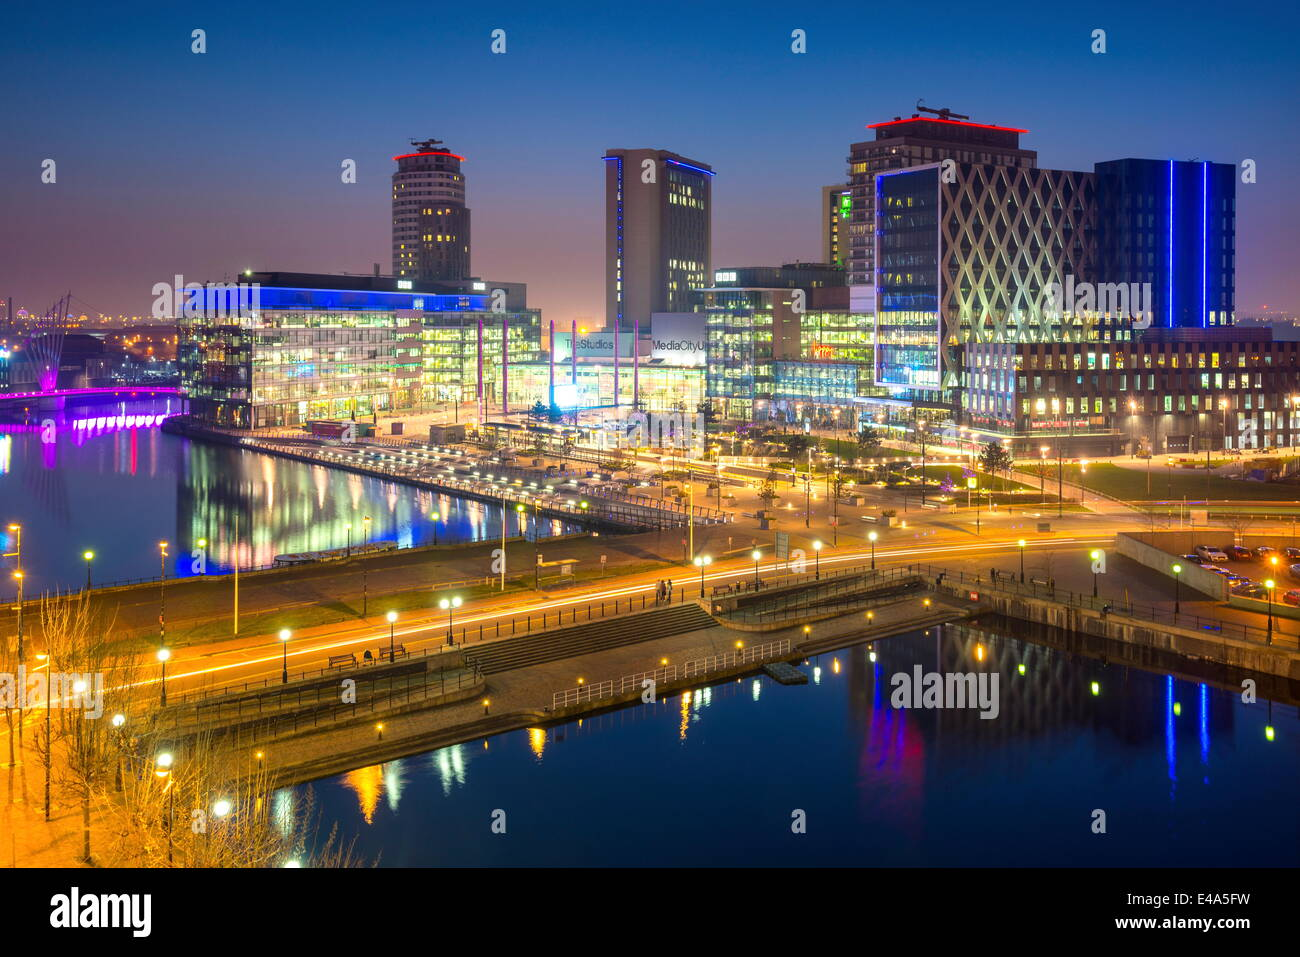 Elevated view of the modern MediaCity UK complex at Salford Quays in Manchester, England, United Kingdom, Europe - Stock Image